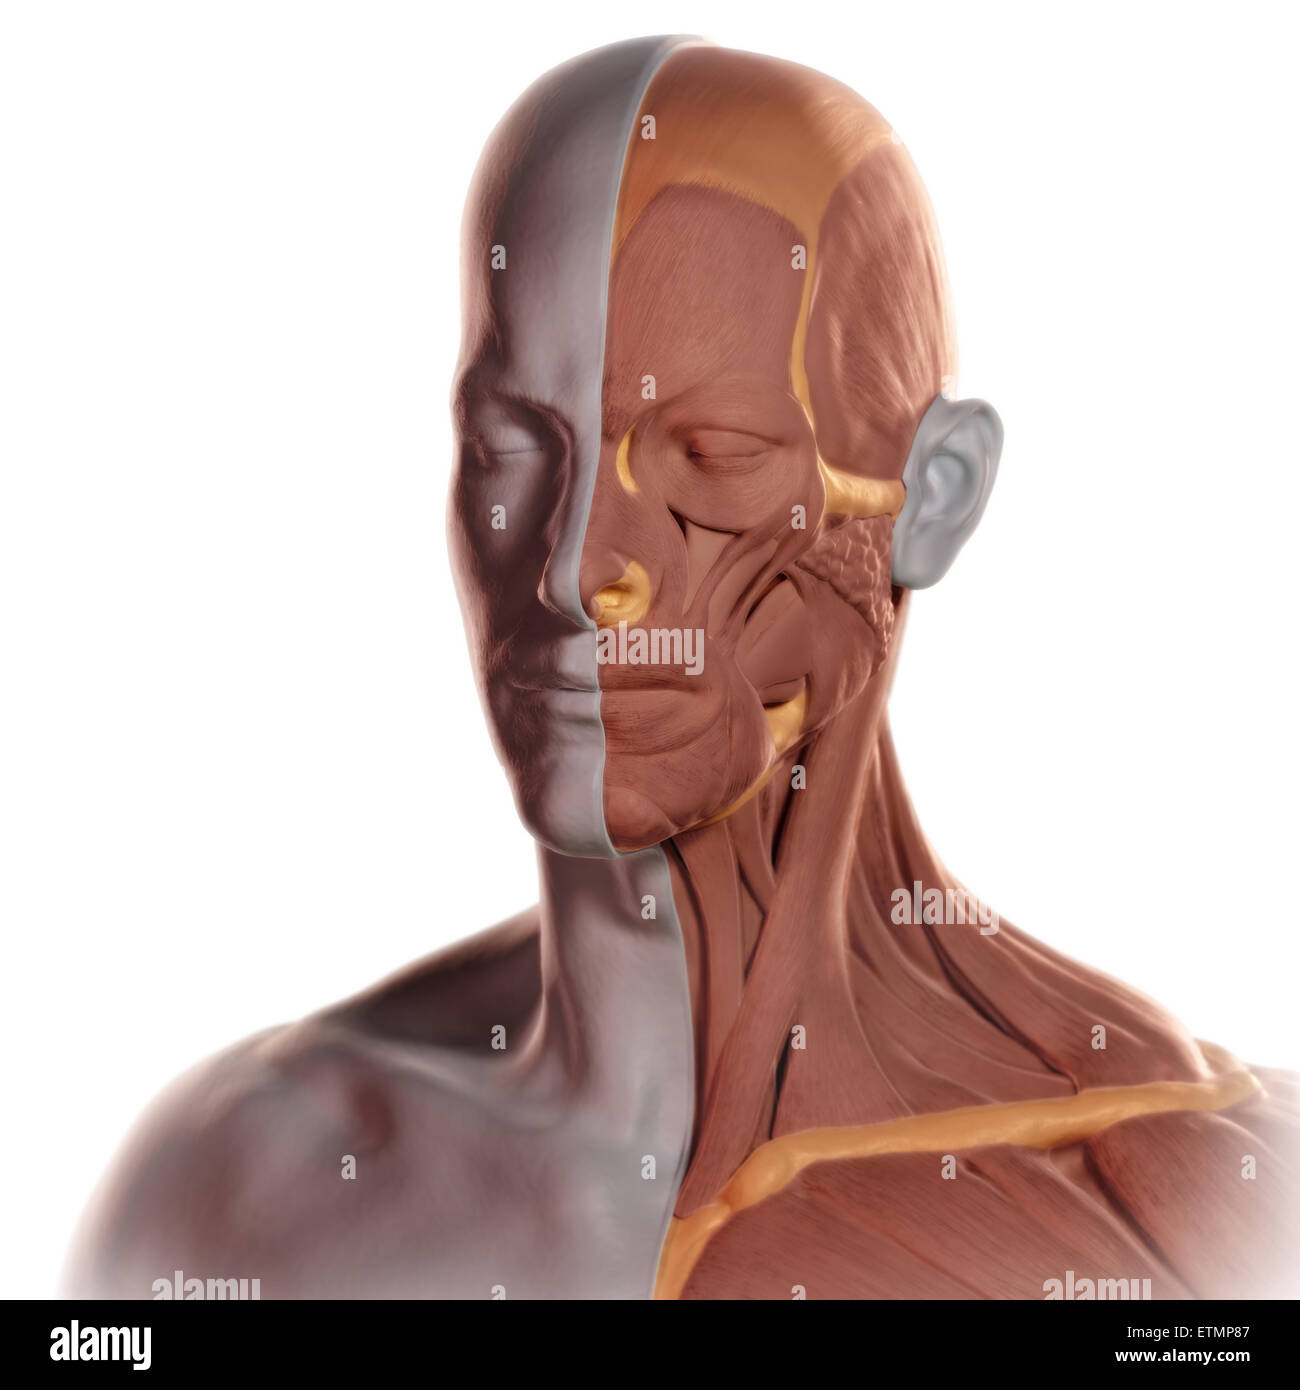 Conceptual image in the style of a clay model of the face with muscle exposed on one side. Stock Photo